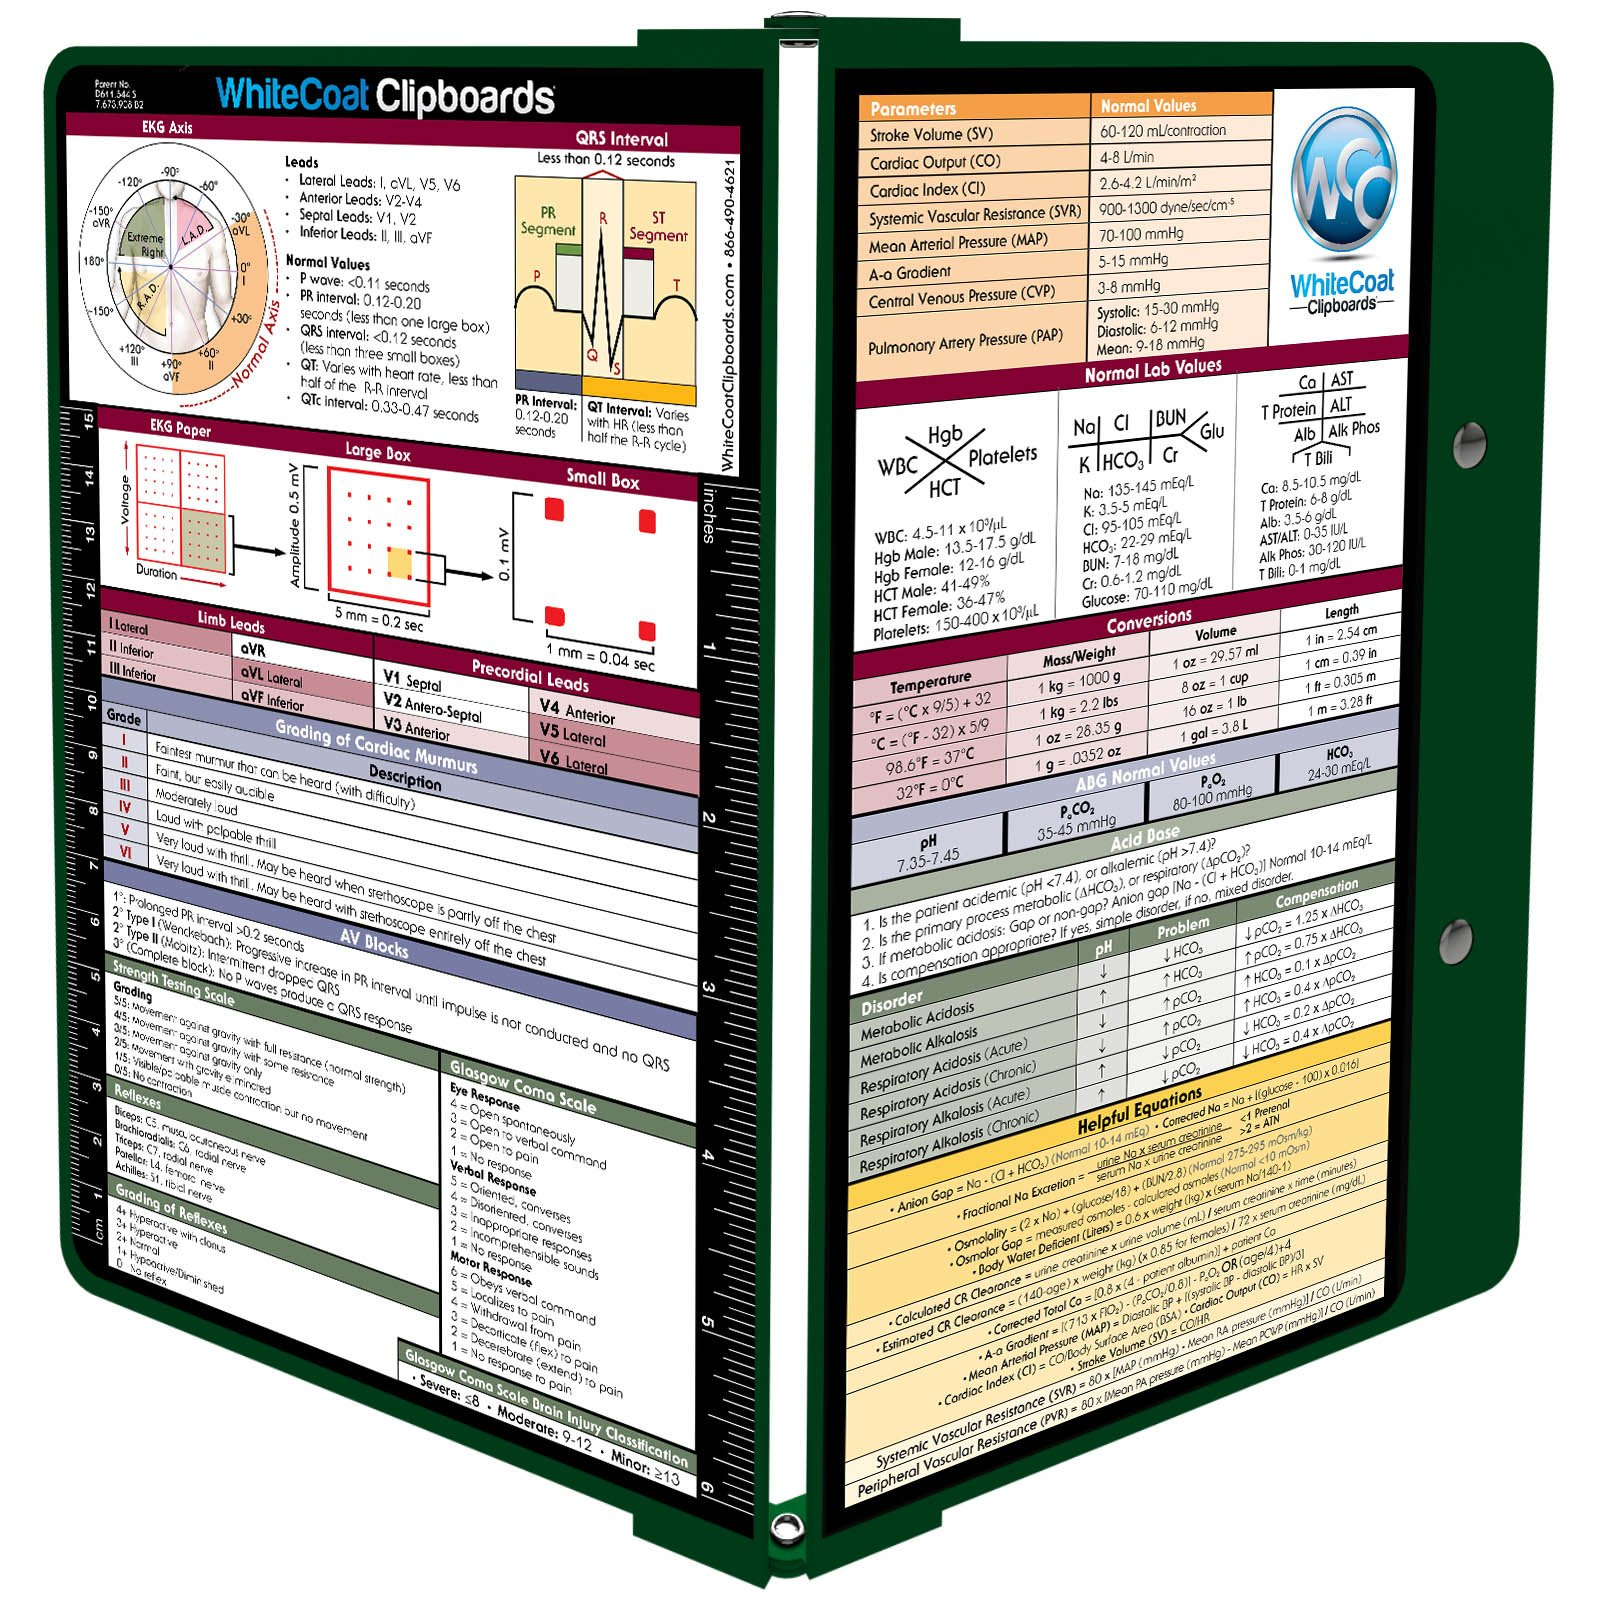 WhiteCoat Clipboard- Green- Medical Edition by WhiteCoat Clipboard